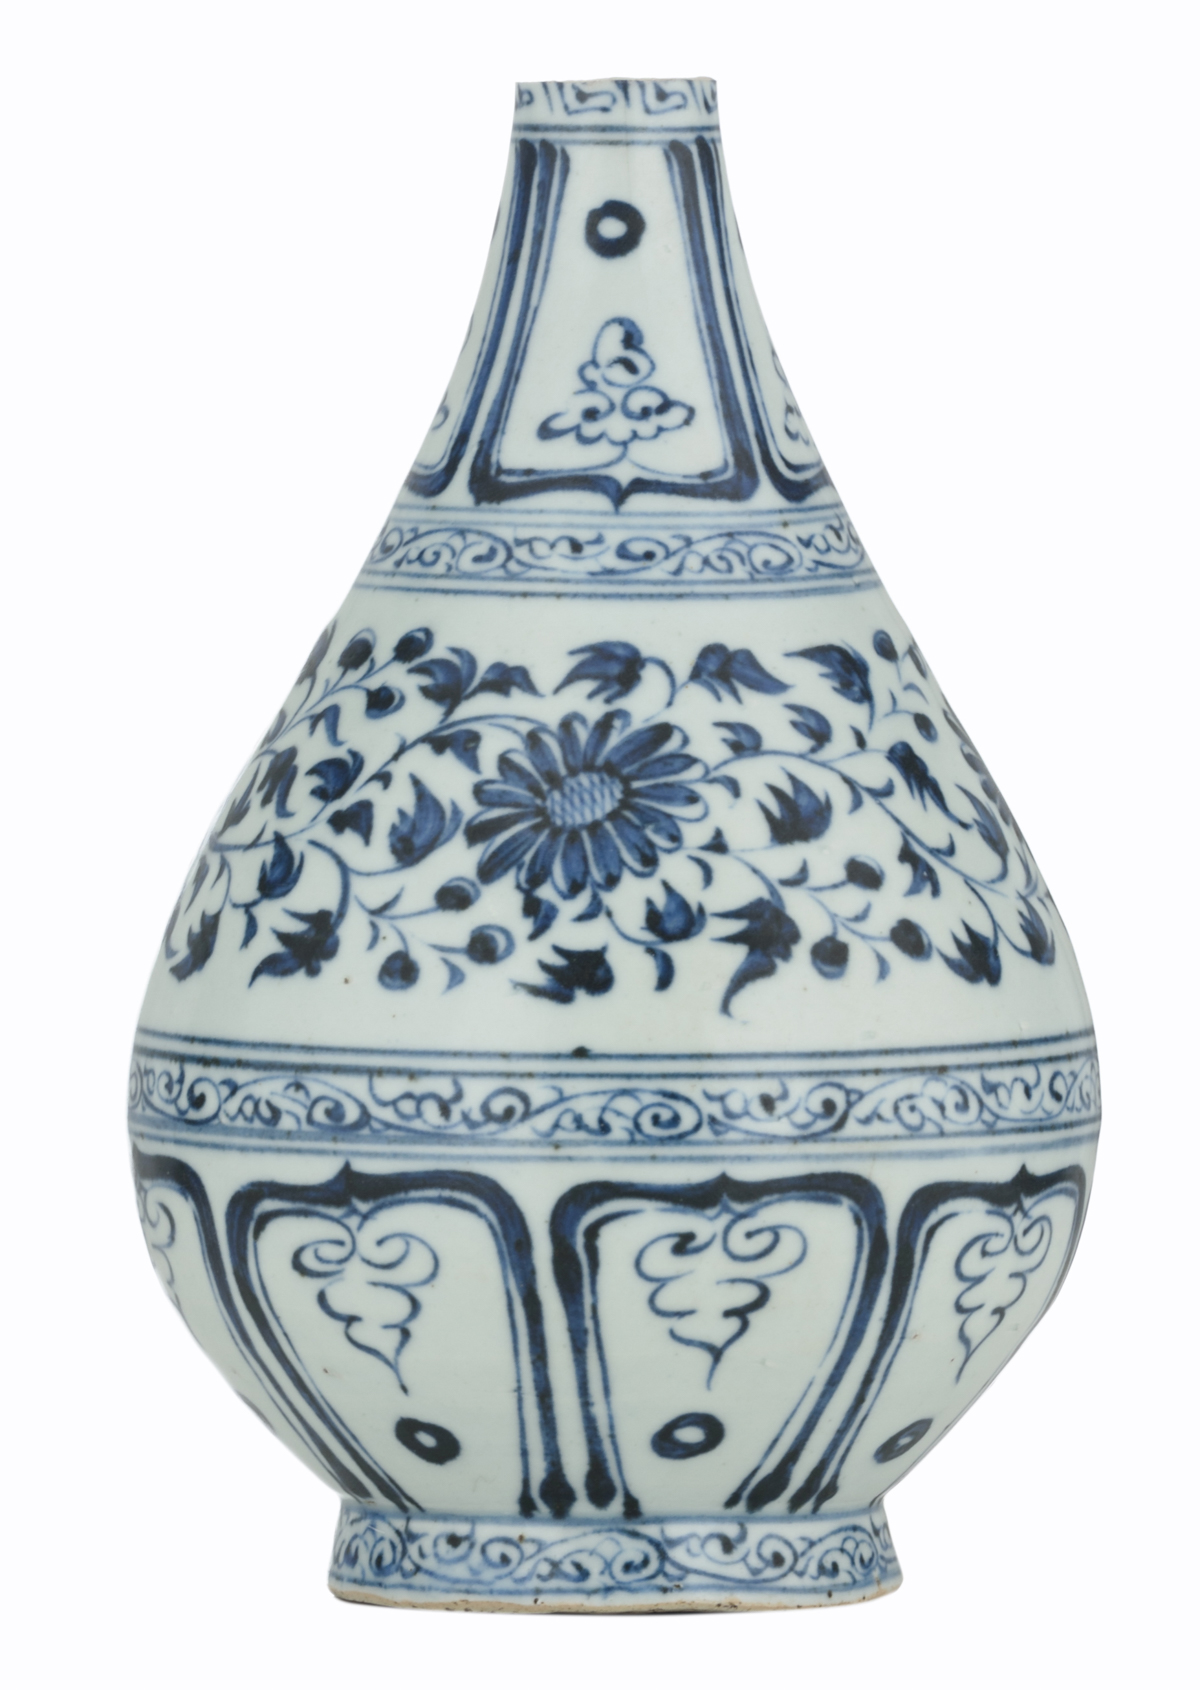 A Chinese blue and white floral decorated Ming type bottle vase, 17thC, H 21,5 cm